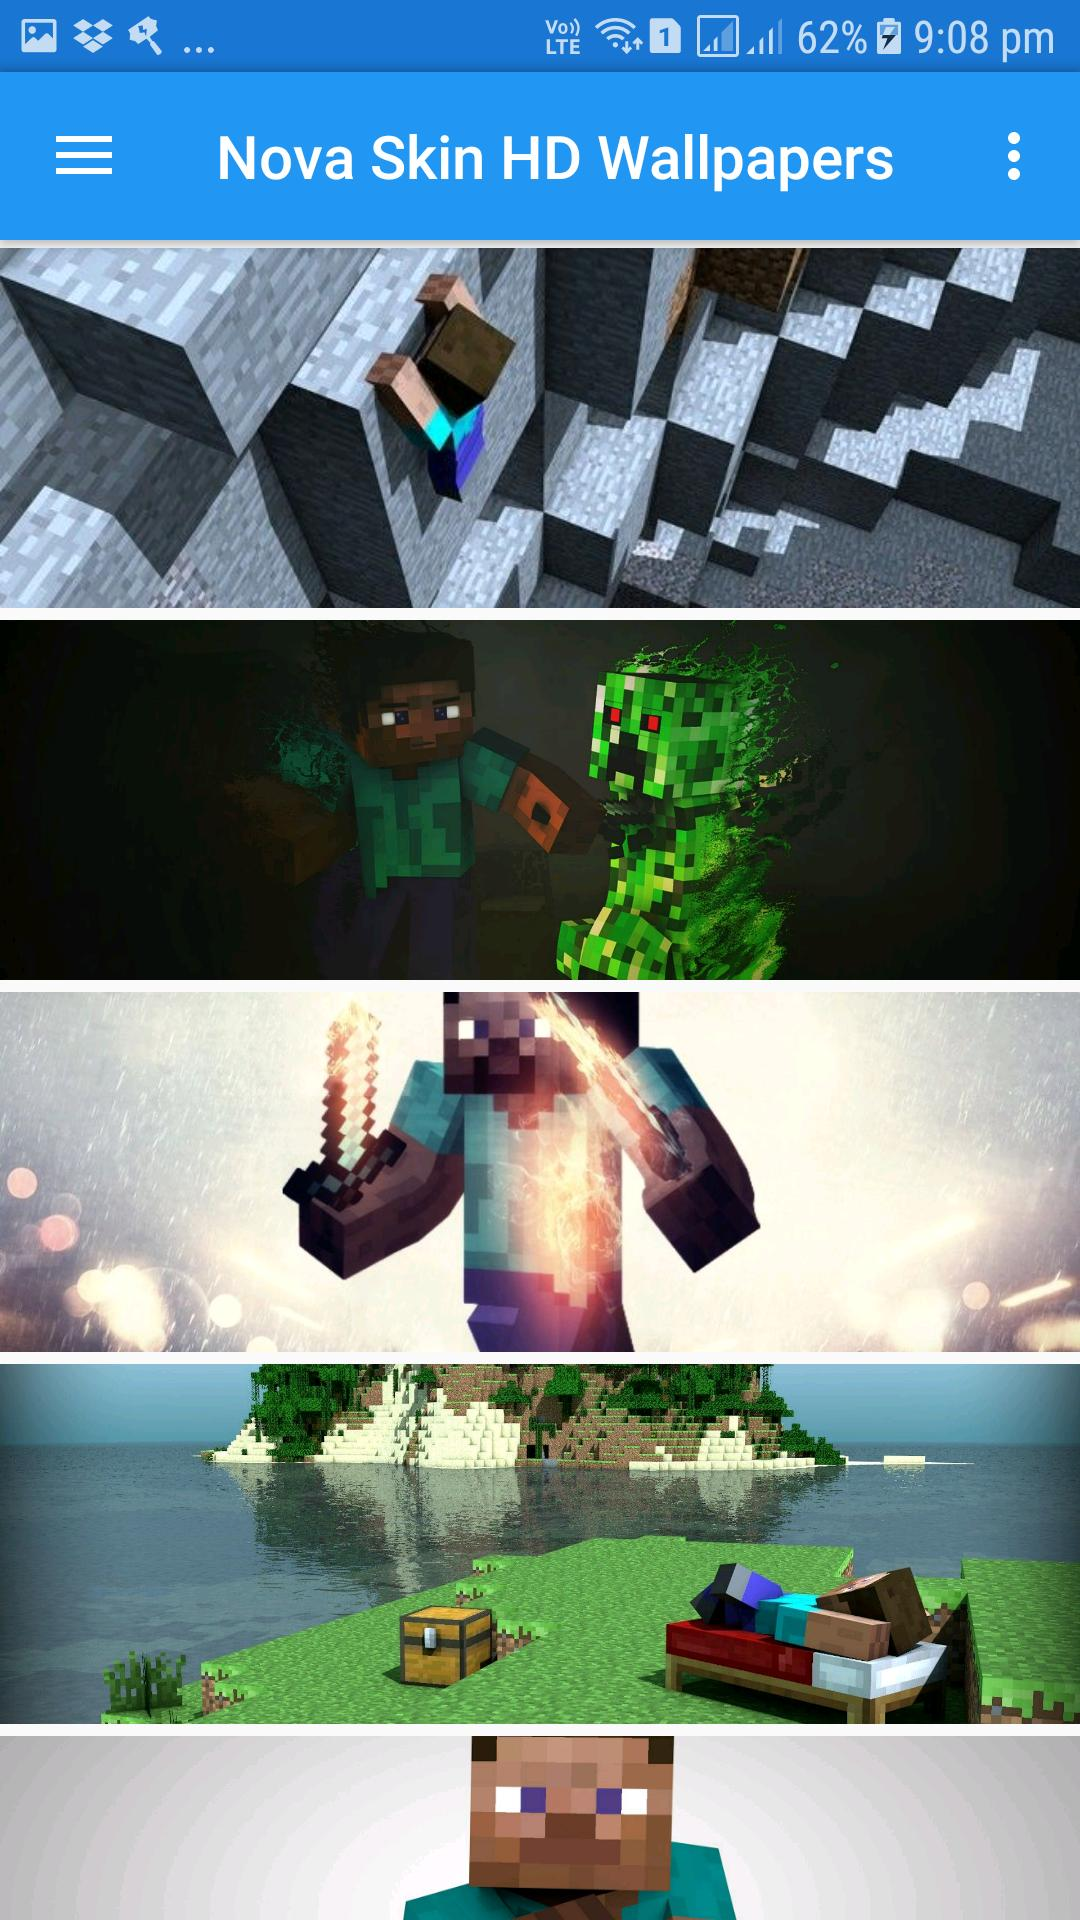 Nova Skin HD Wallpapers for Android - APK Download